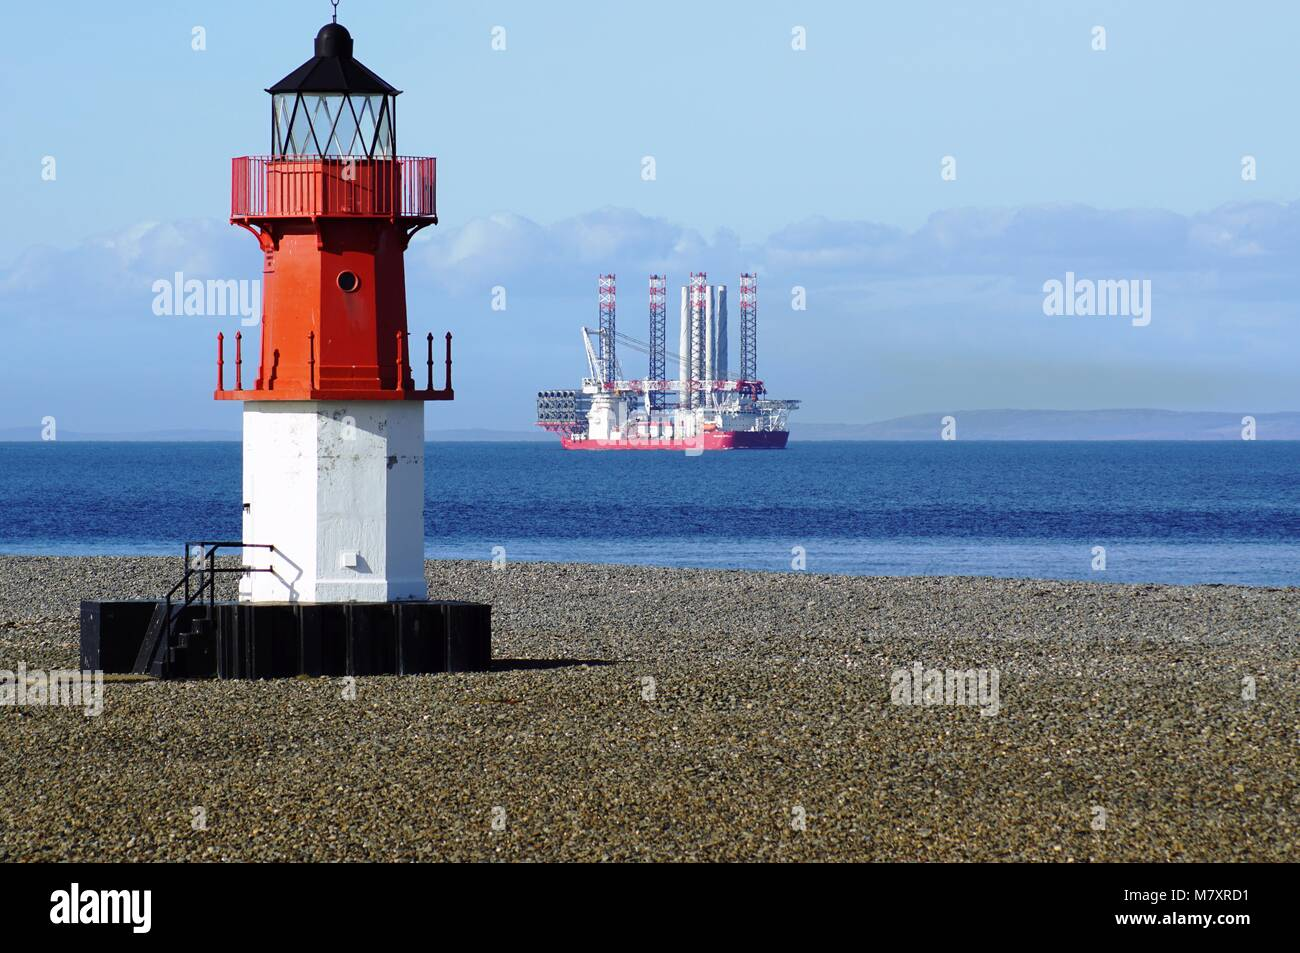 Seajacks Scylla passes the Point of Ayre with another shipment of Wind Farm modules for Walney Wind Farm - Stock Image